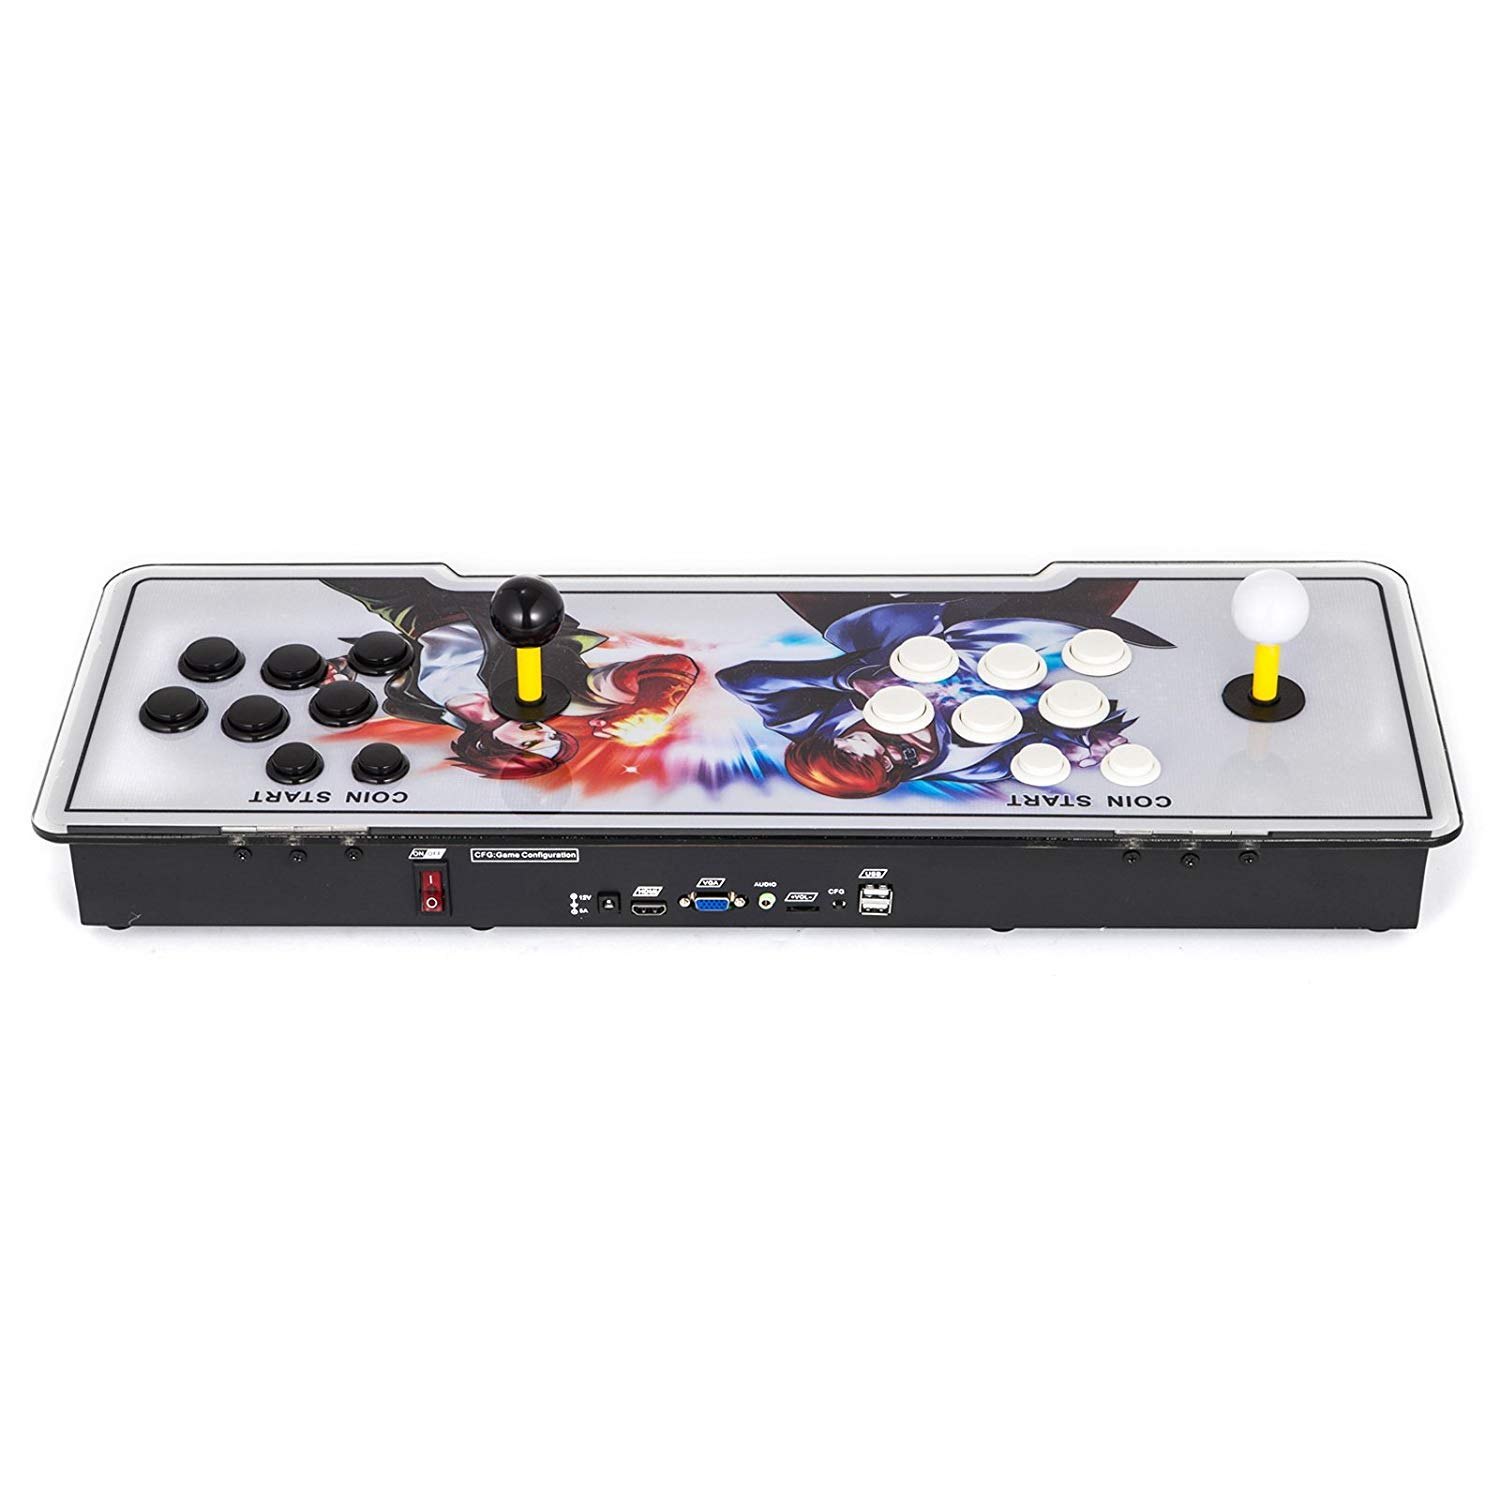 Happybuy Pandora Box 2222 in 1 Arcade Console 9S+ Pandoras Box 2 Players Retro Arcade Station x Full HD Video Game Console with Arcade Joystick Support HDMI VGA USB by Happybuy (Image #3)